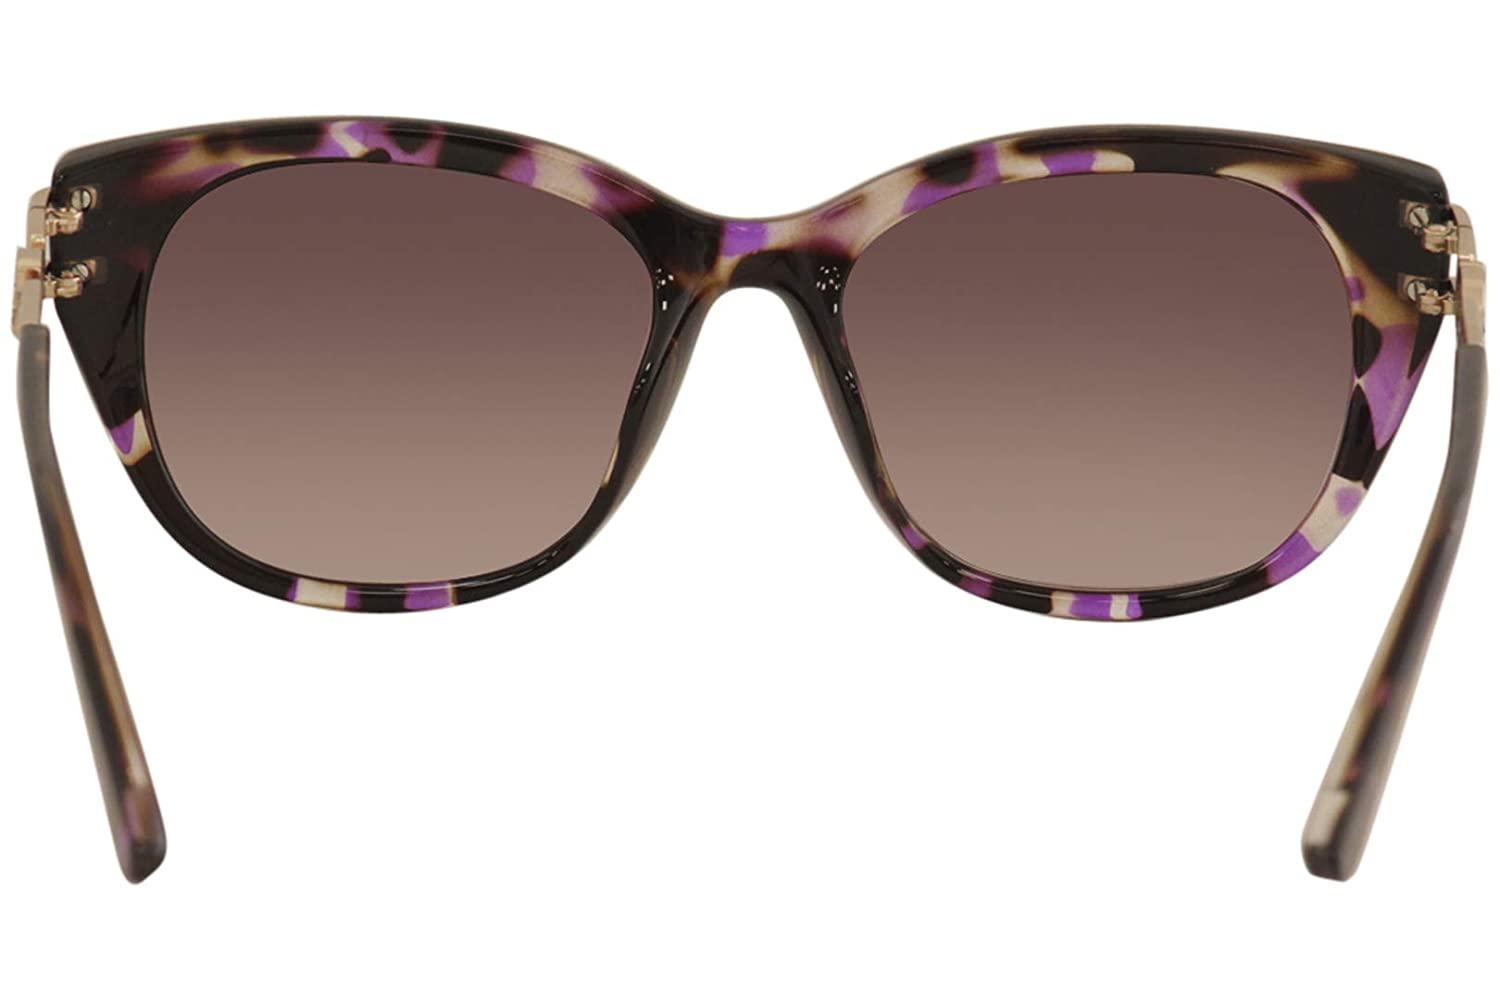 Sunglasses Guess GU 7562 83Z violet//other gradient or mirror violet